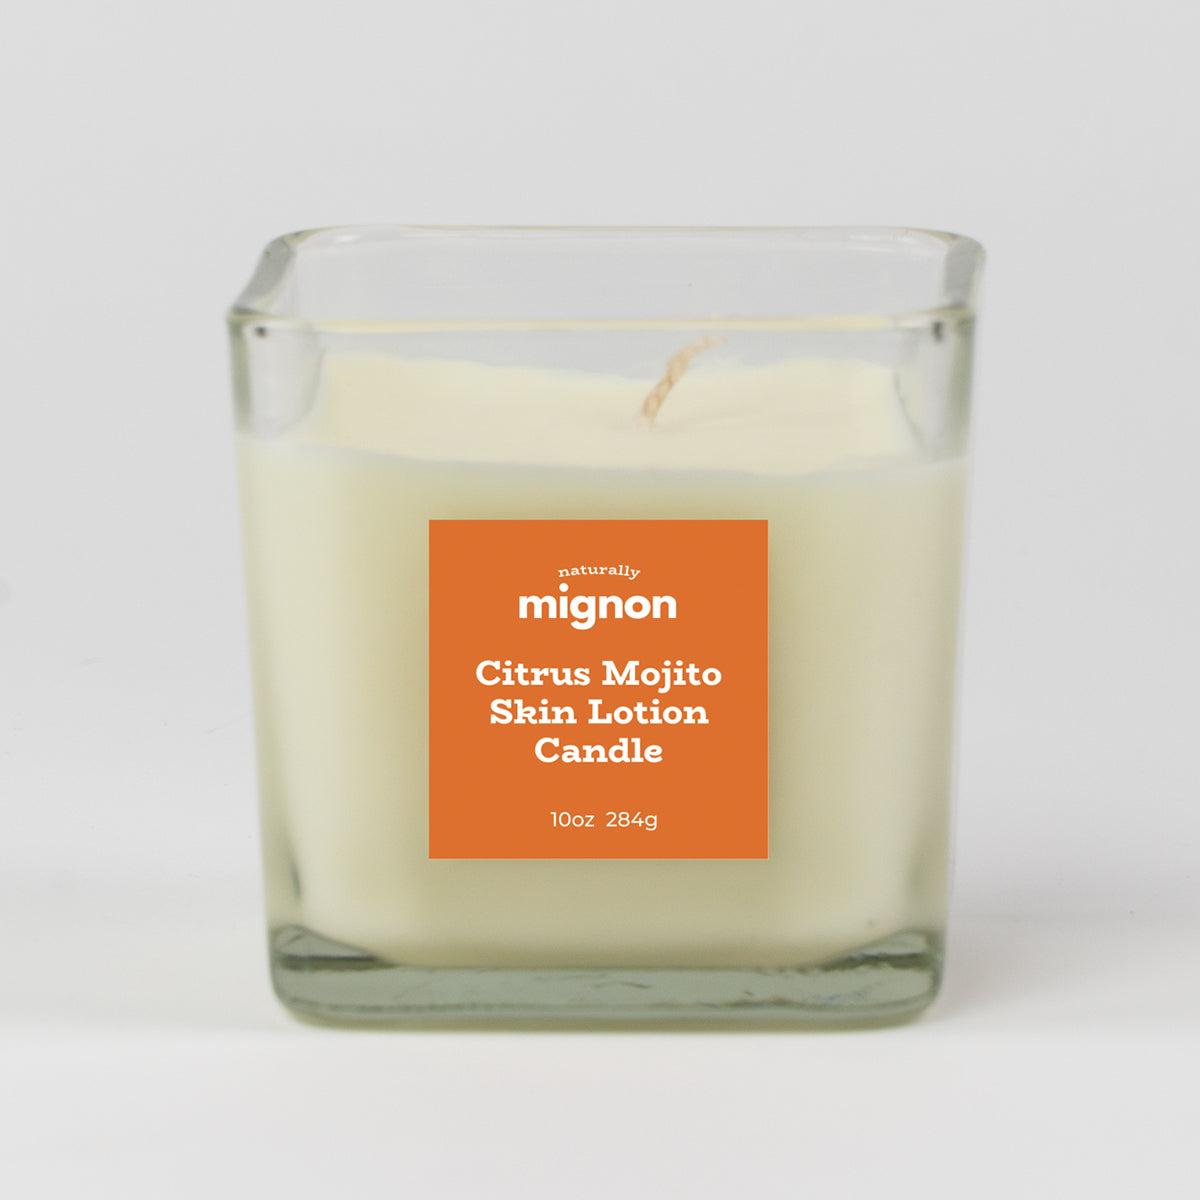 citrus-mojito-soy-lotion-candle